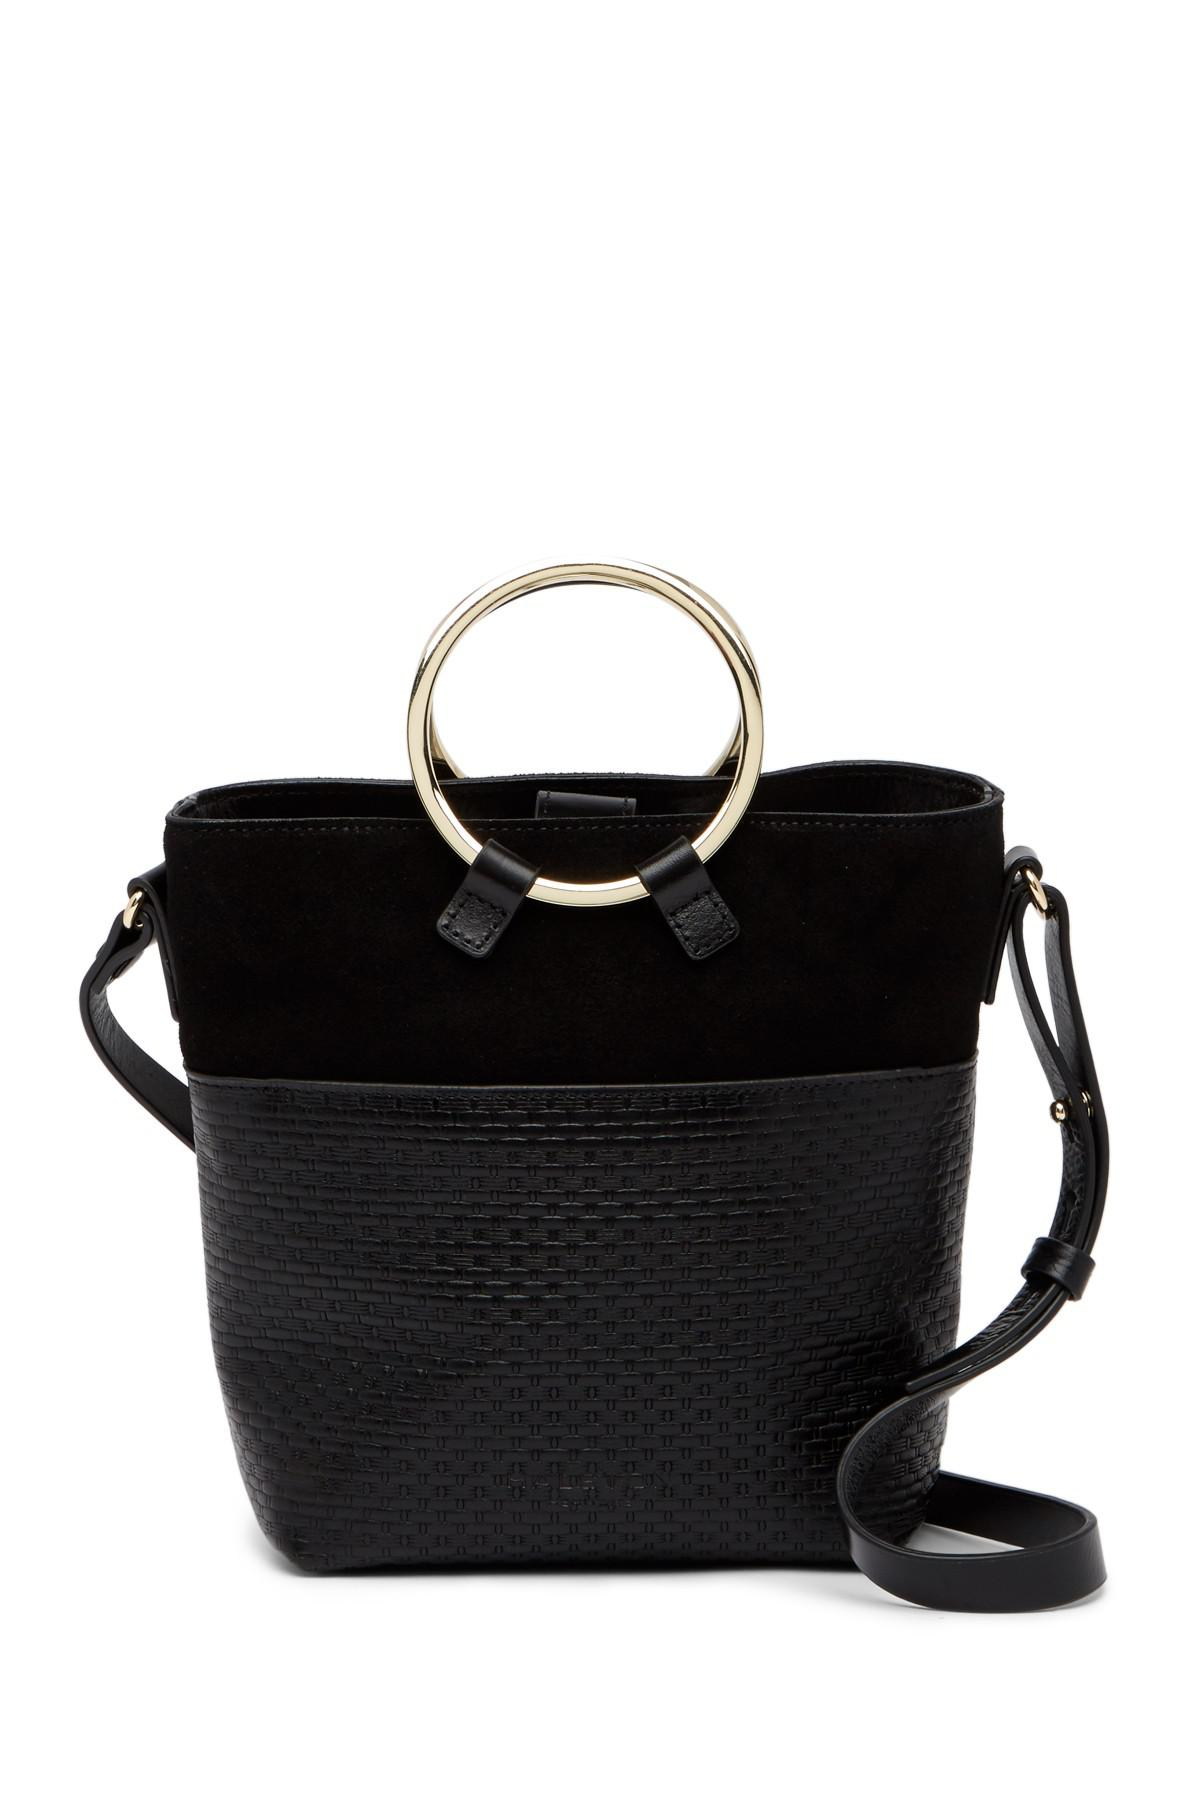 61749a6db555 Lyst - Halston Small Embossed Leather Crossbody Bucket Bag in Black